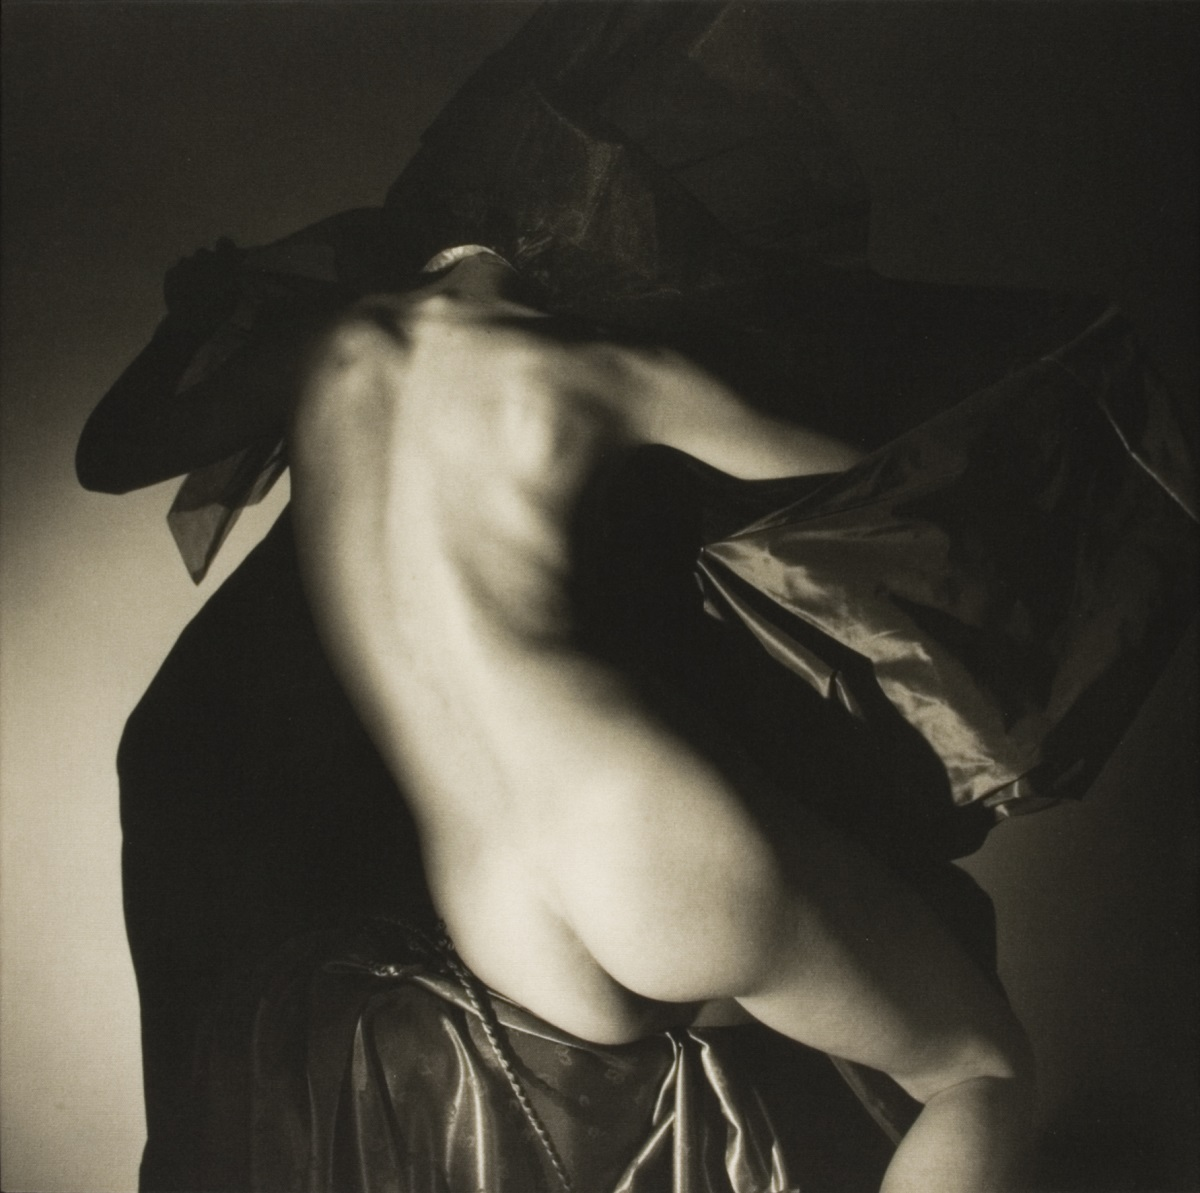 Horst P. Horst, Naked, 1982-1989, platinum print on canvas, 50.5 x 50.5 cm, edition 15